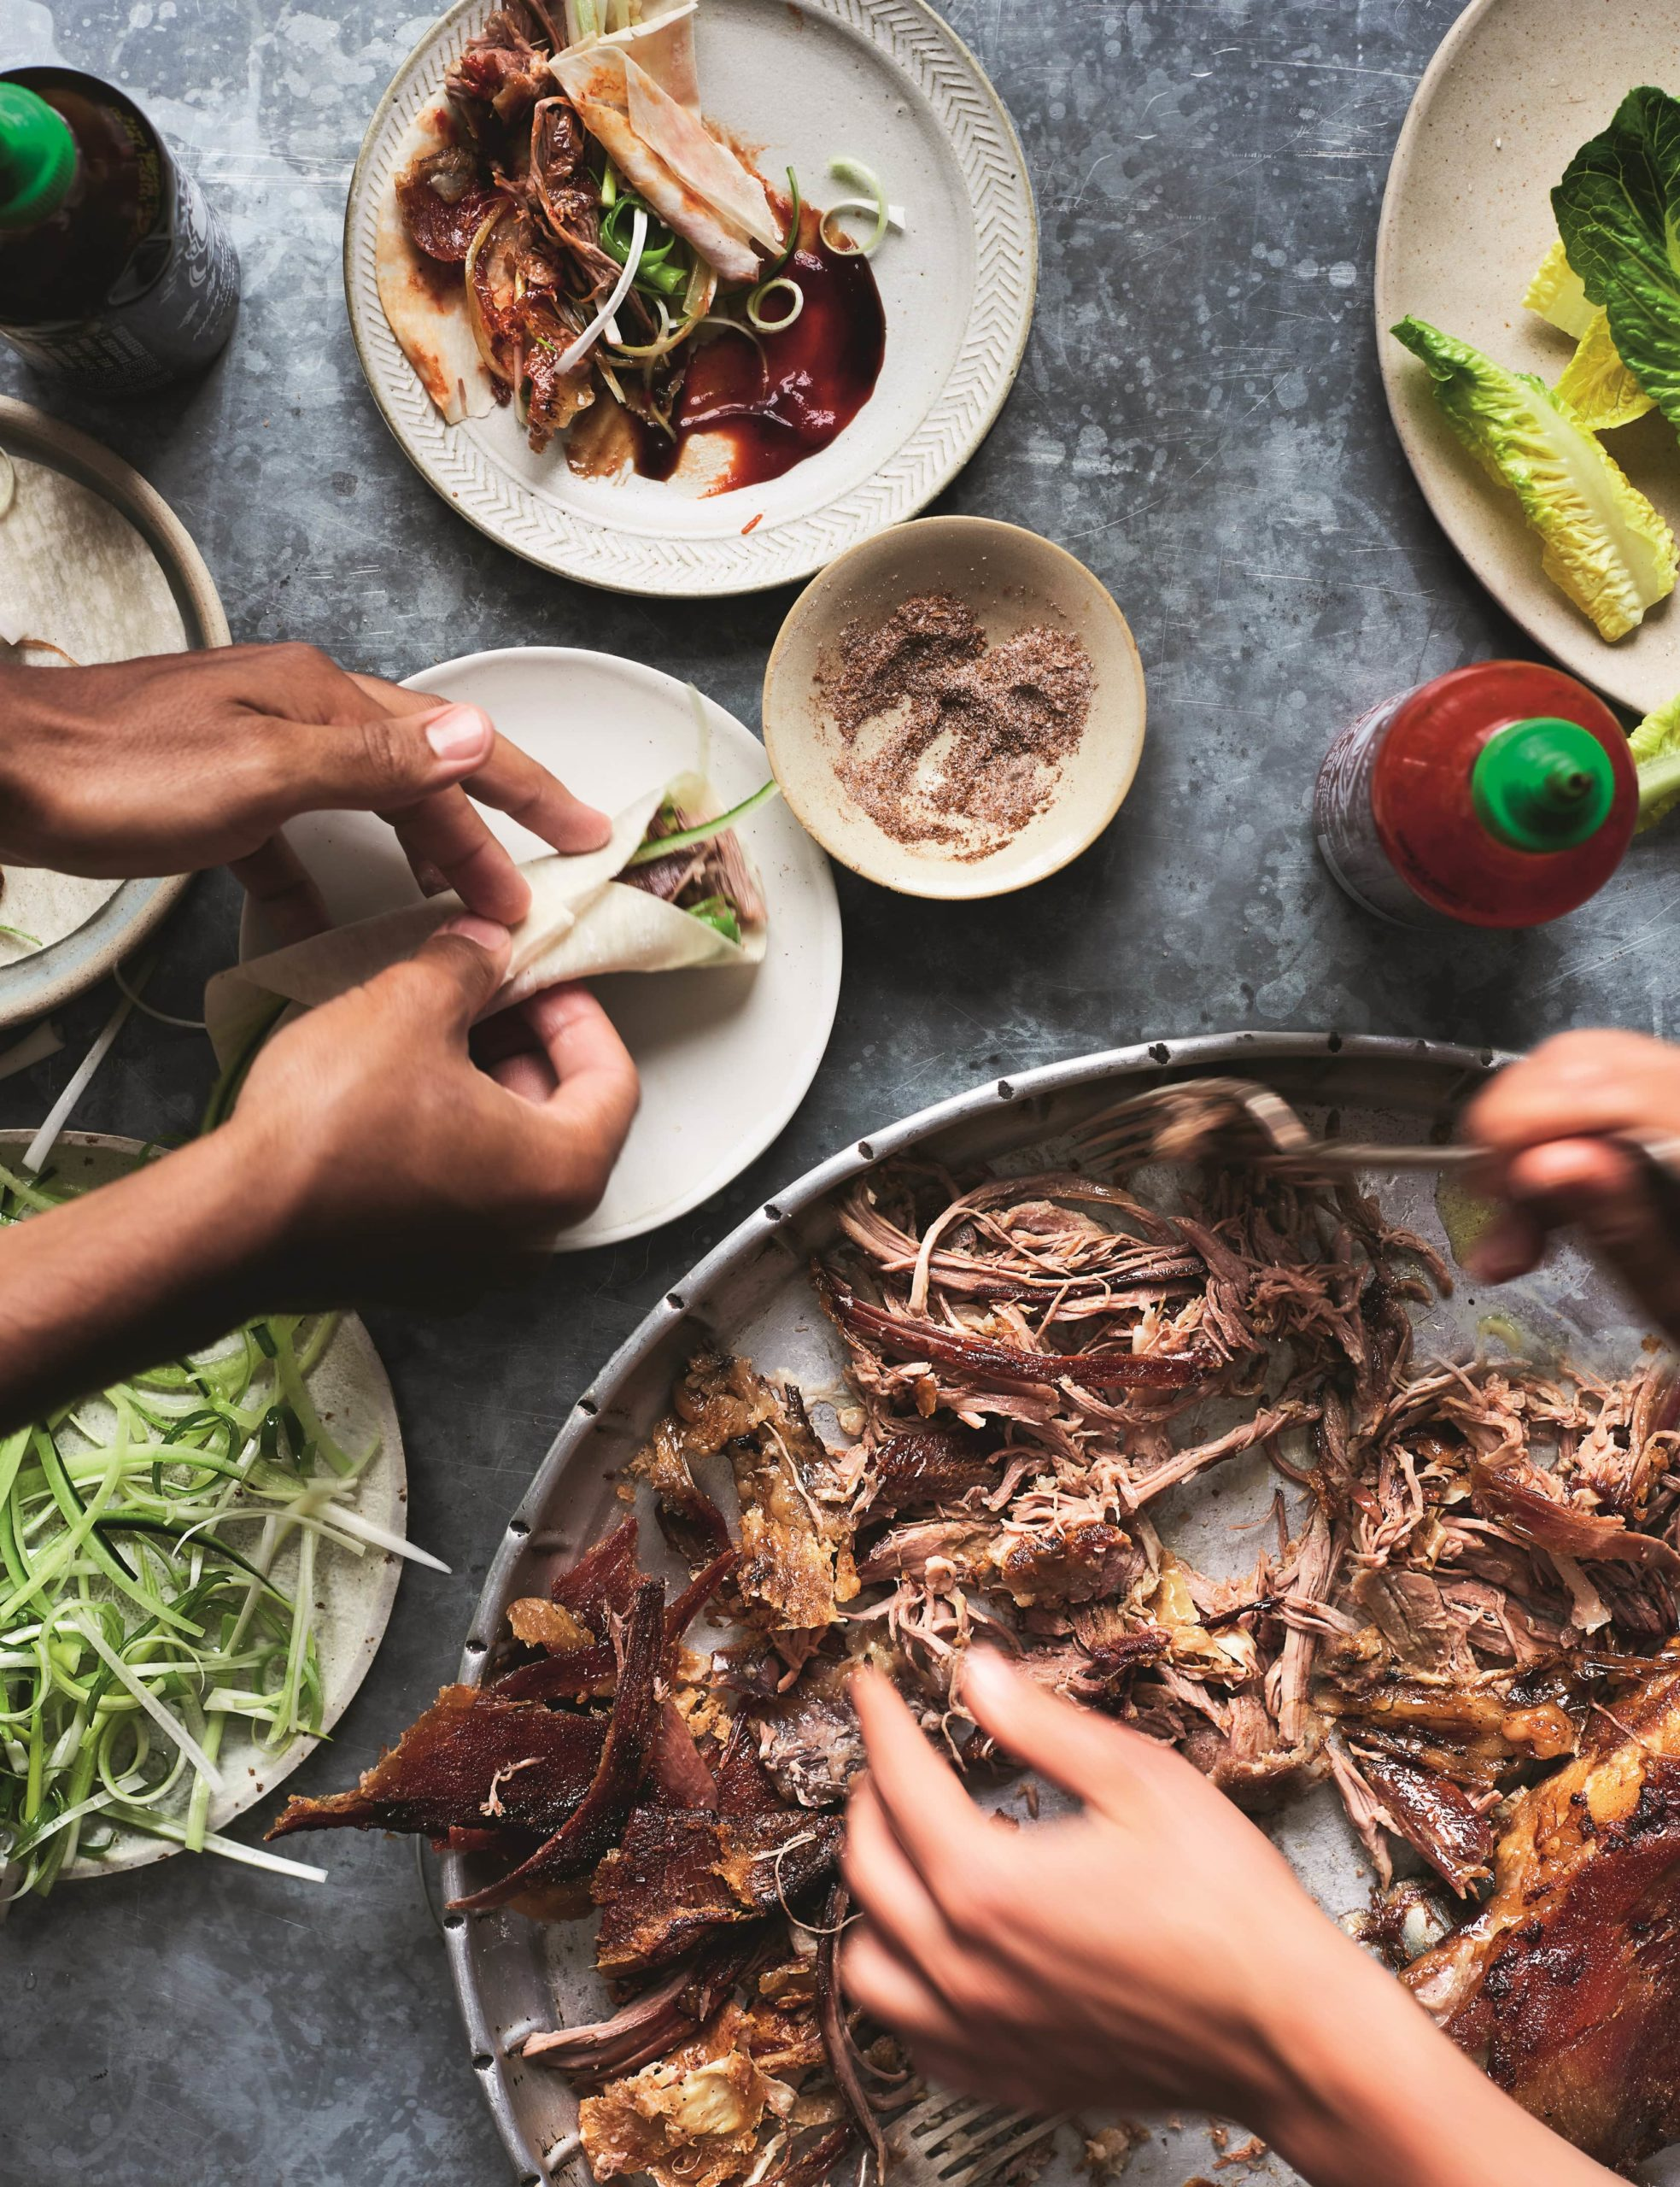 Gizzi Erskine roasted lamb belly recipe from Restore: A Modern Guide To Sustainable Eating